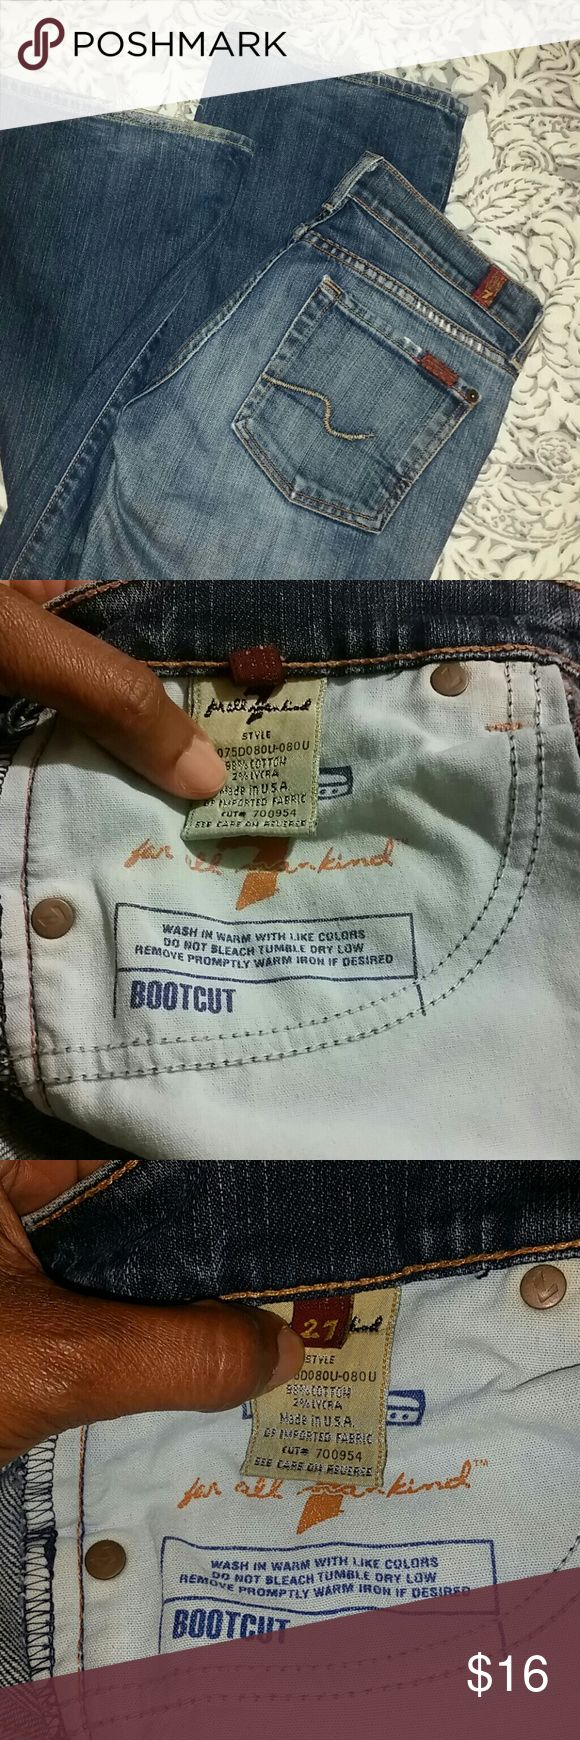 """Authentic 7 All Mankind Bootleg Jeans Sz. 27 Authentic Bootleg jeans. These are gently jeans in great condition.  The price also includes distress at the bottom of jeans, also in Picture 6 a little distress but no holes or rips else where.  Inseam 31"""". Also true to size. Leg opening 8.5"""" laying flat. Open to reasonable offers. Please see the chart on my page. 7 For All Mankind Jeans Boot Cut"""